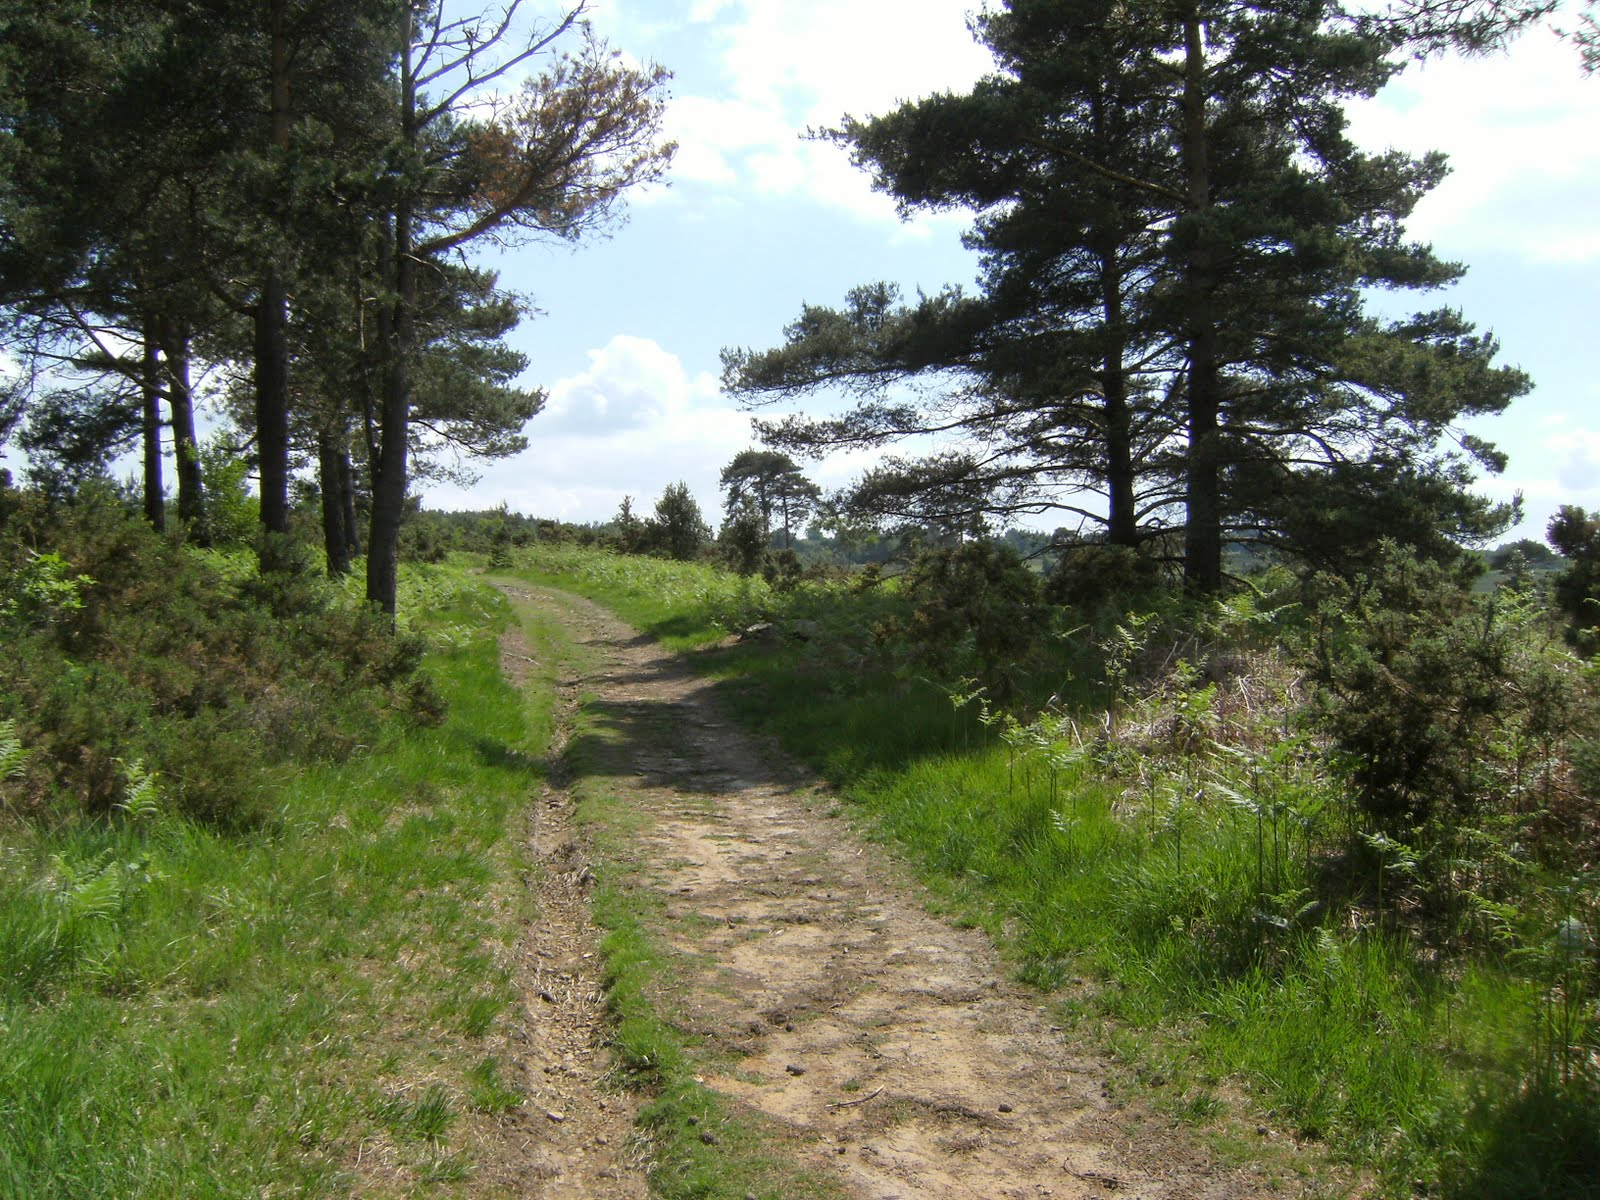 1006120042 Emerging onto Ashdown Forest